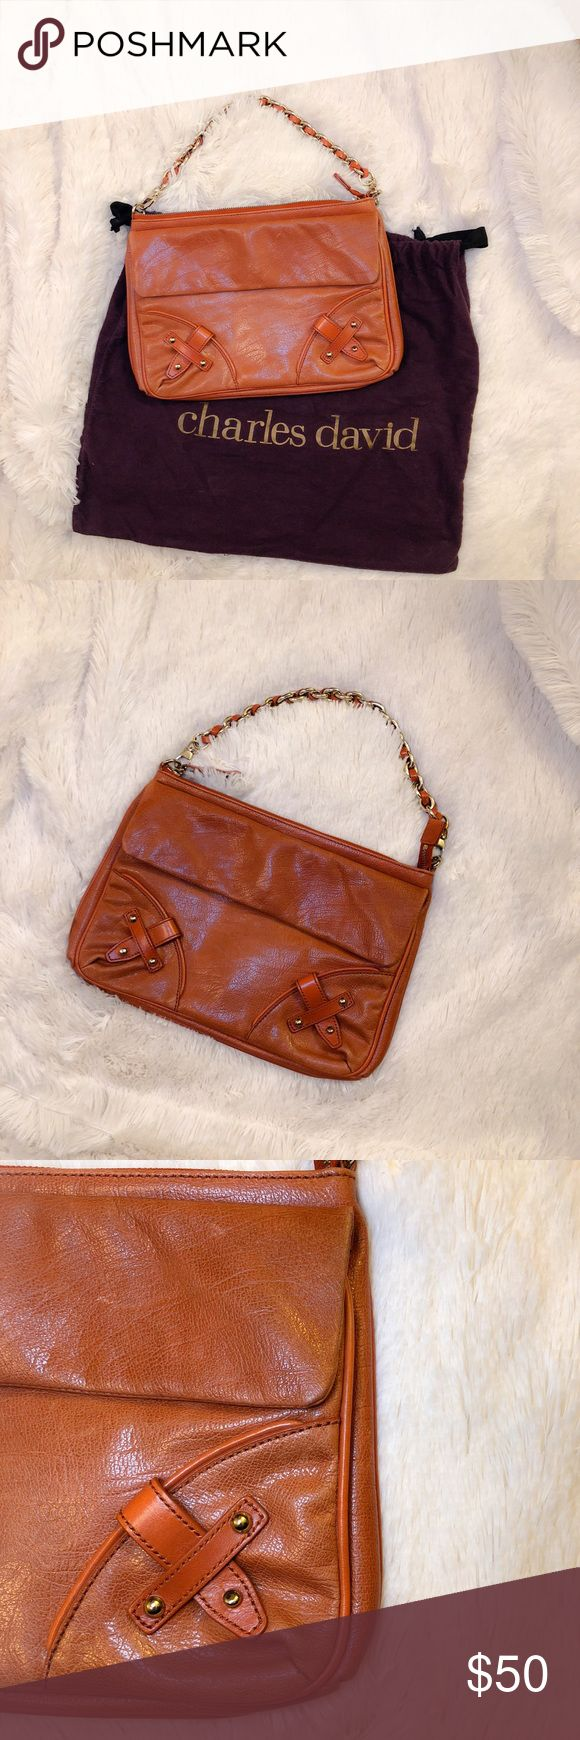 CHARLES DAVID Leather Handbag Charles David leather shoulder in beautiful cognac color. Gold chain strap, front flap pocket and zipper compartment with multiple interior pockets. Pre-loved and in beautiful condition, minor scuffing to the leather throughout from normal use, gives it a distressed look. Original Charles David dust bag included. Reasonable Offers Welcome 🙃 Charles David Bags Shoulder Bags